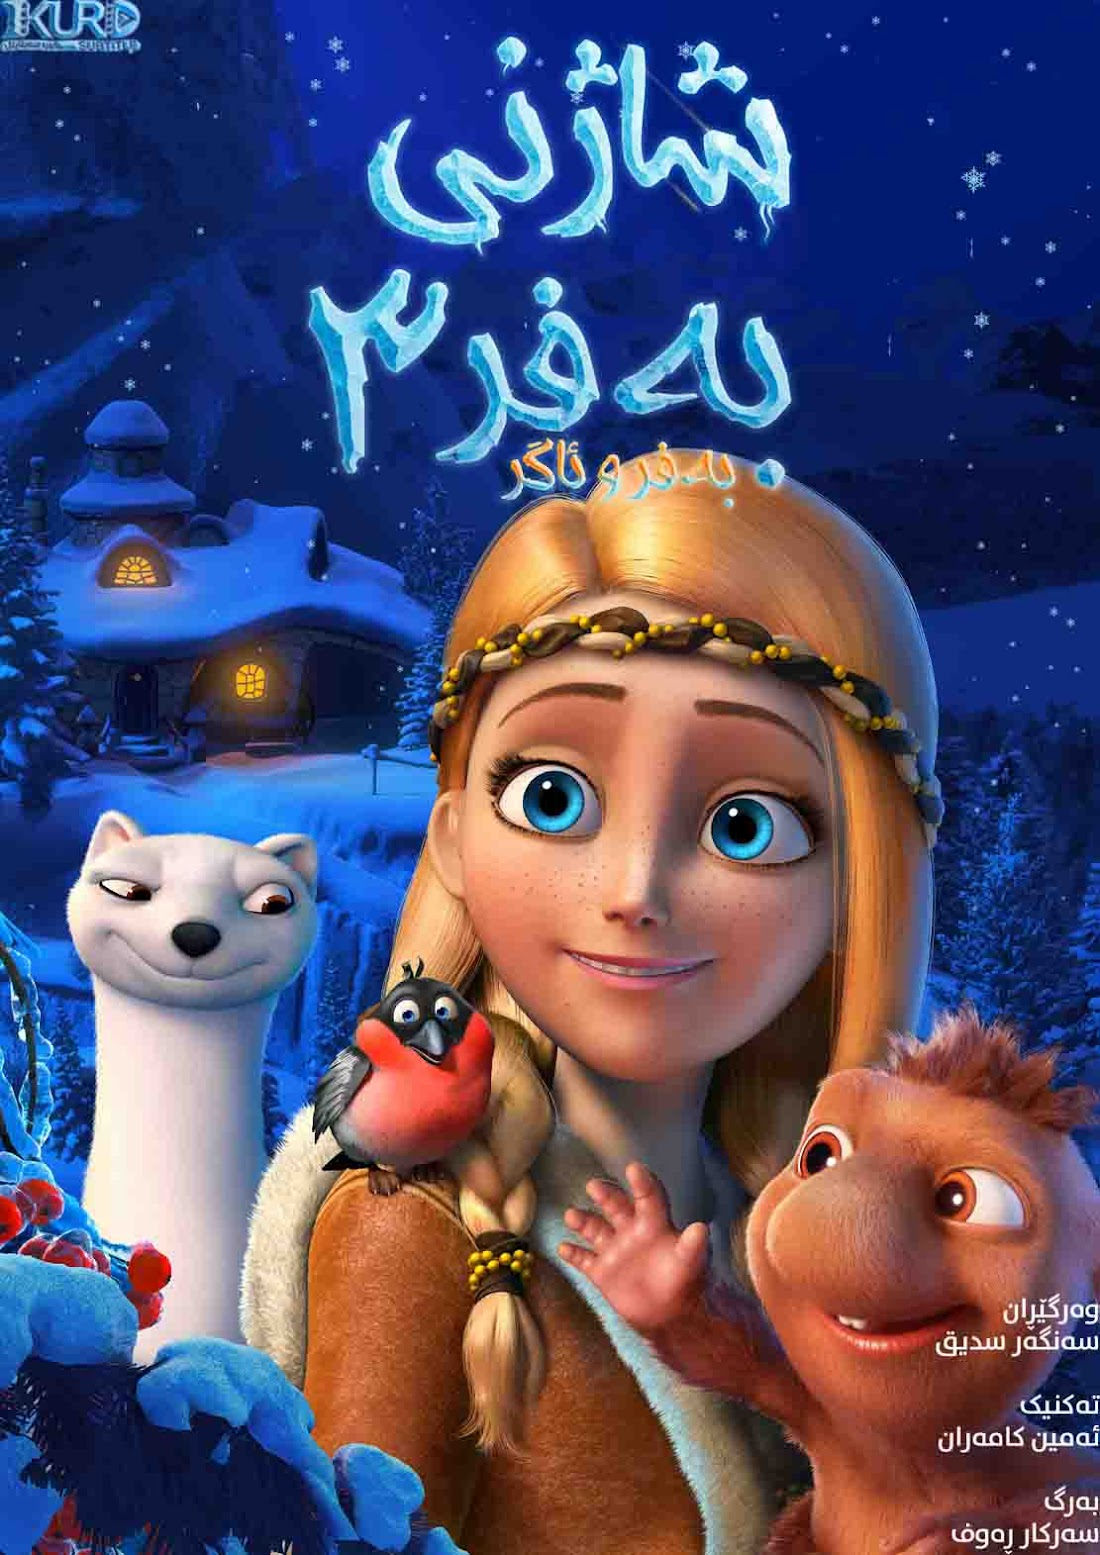 The Snow Queen 3: Fire and Ice kurdish poster